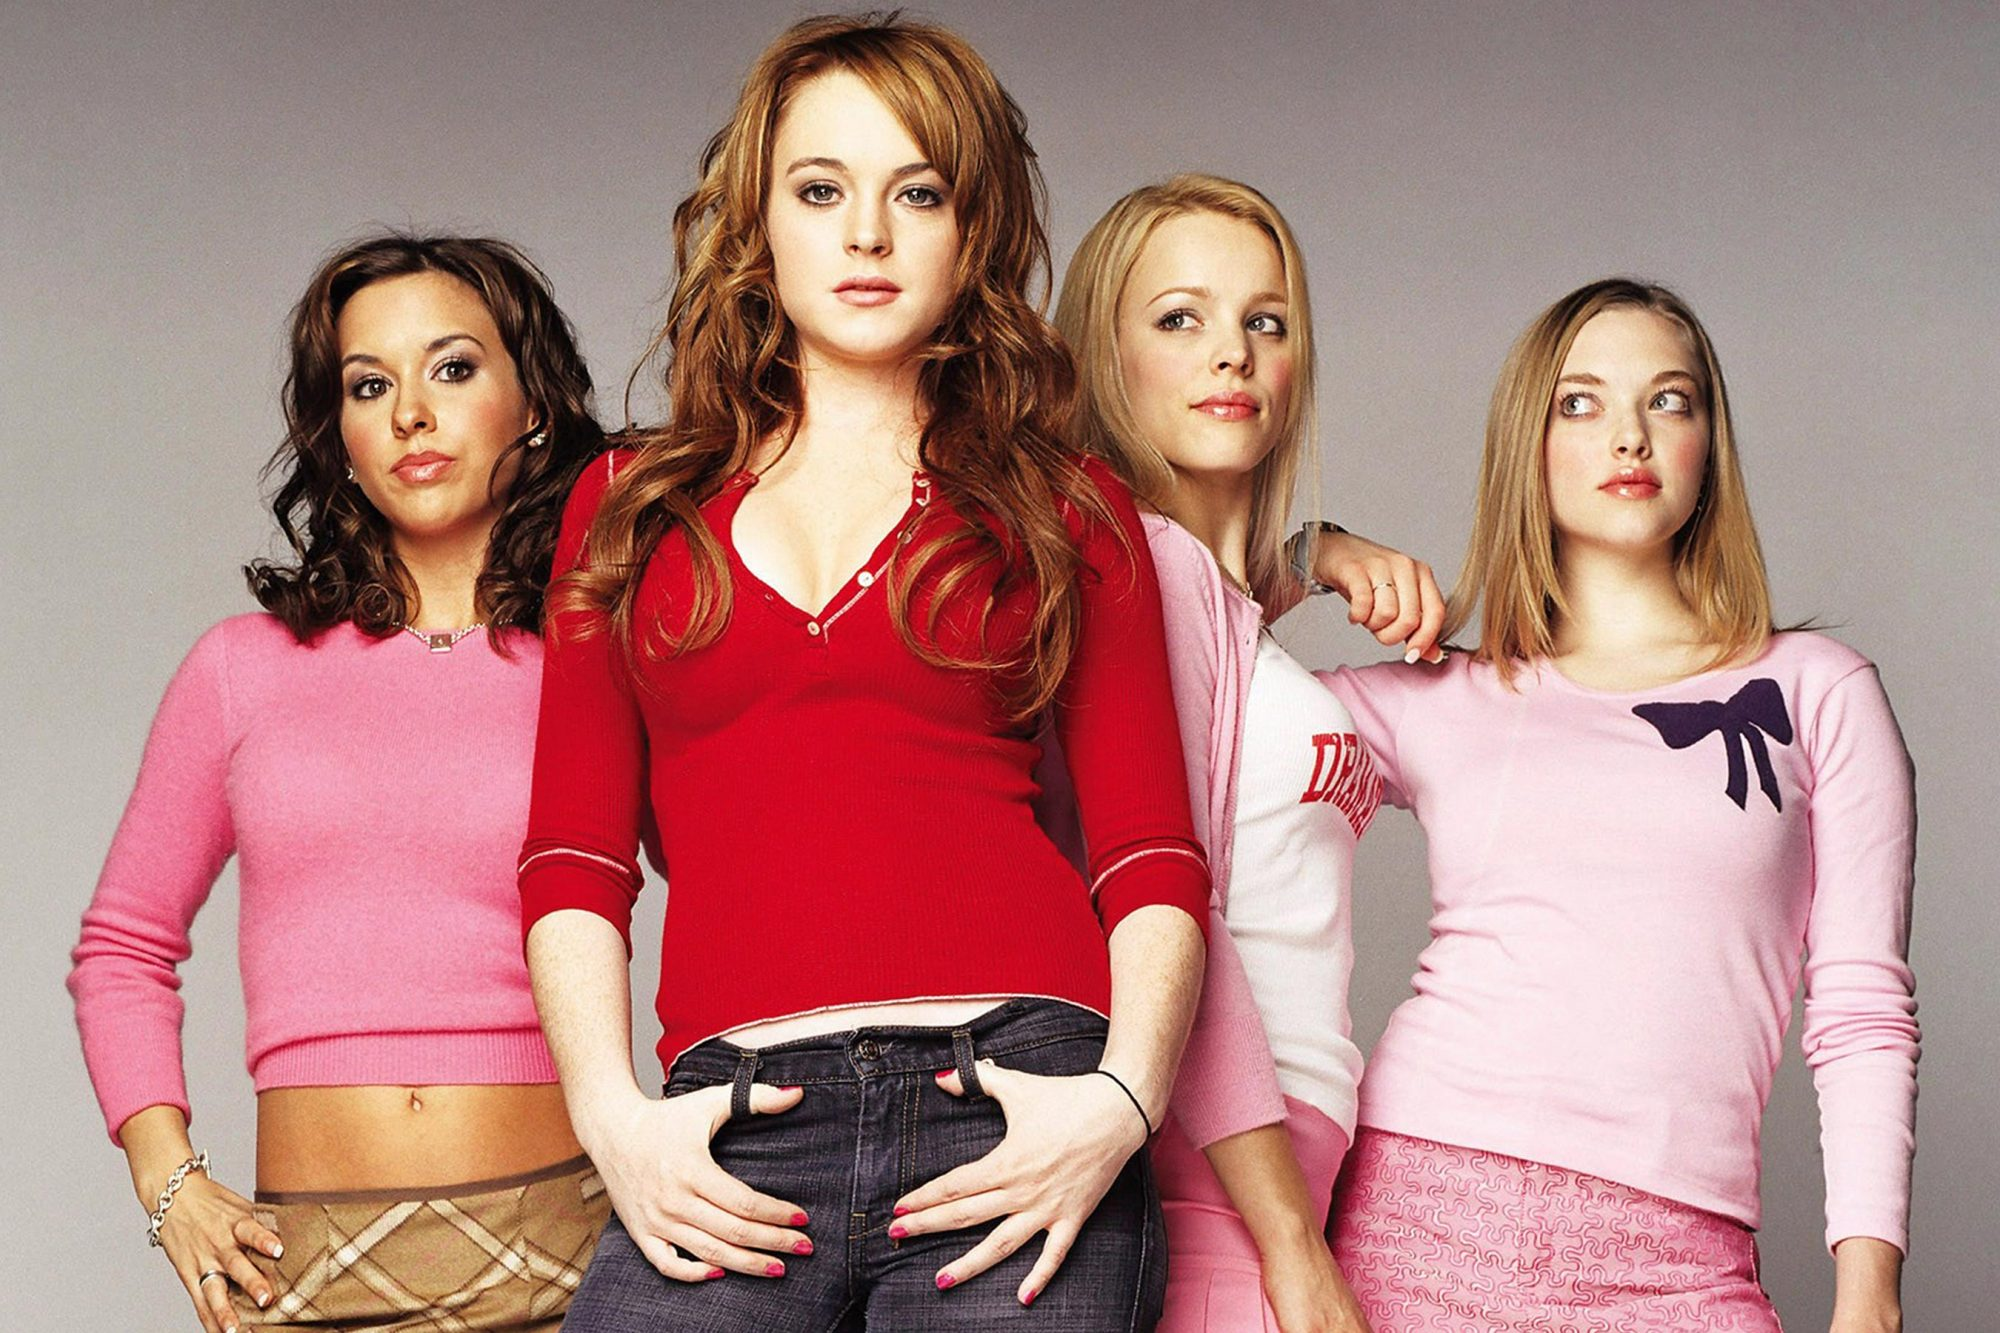 MEAN GIRLS, from left: Lacey Chabert, Lindsay Lohan, Rachel McAdams, Amanda Seyfried, 2004. ©Paramou